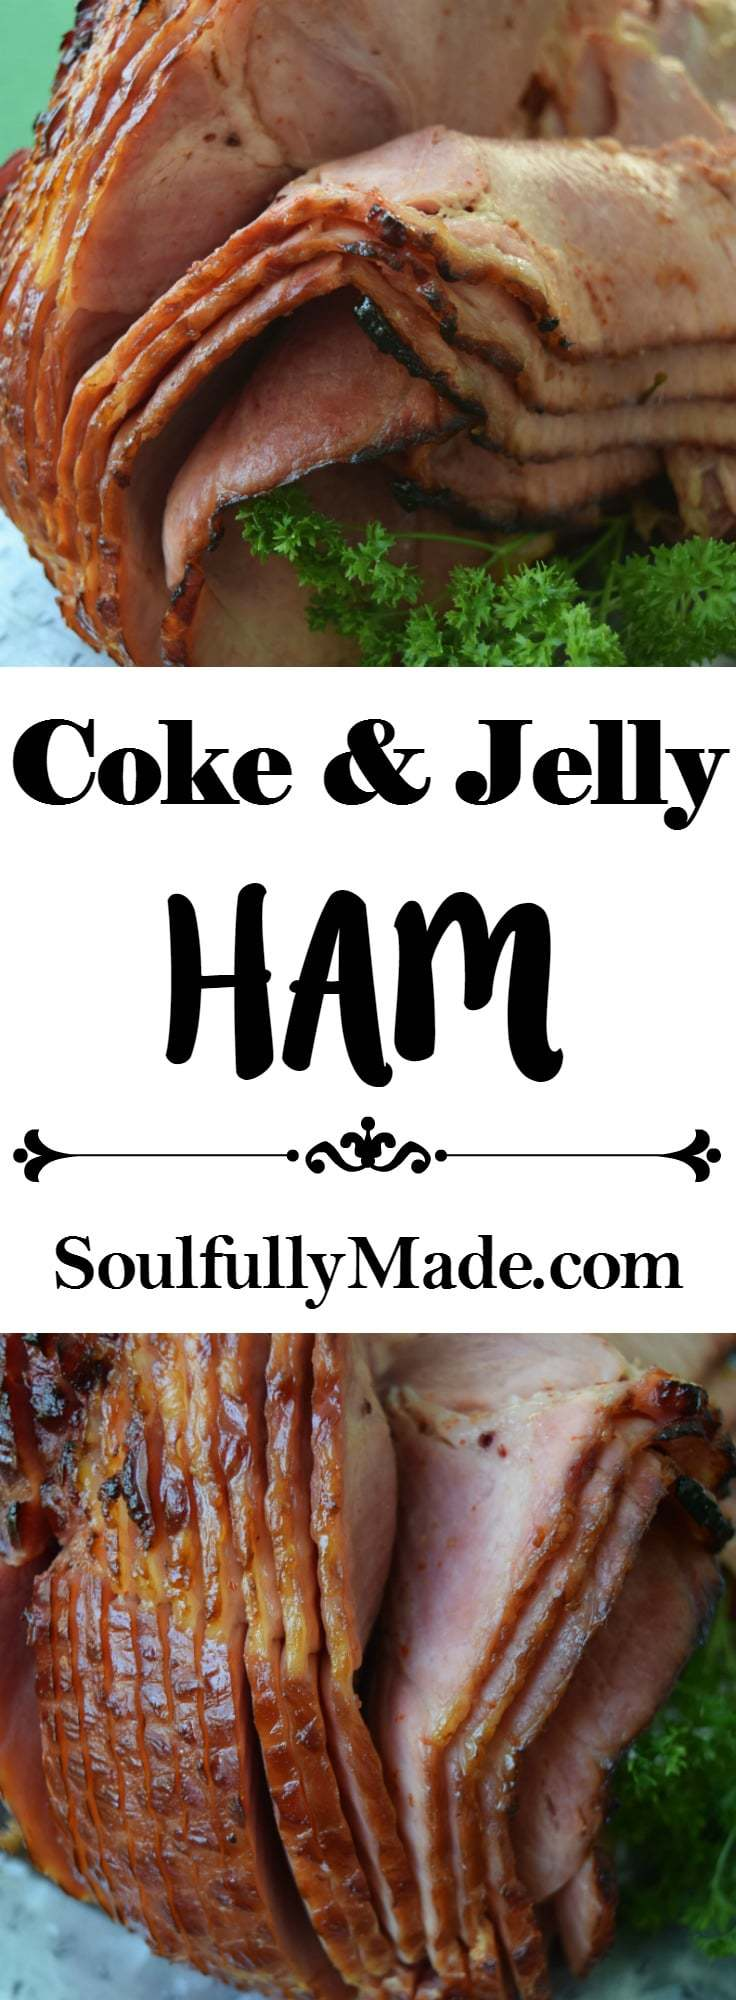 Coke and Jelly Ham